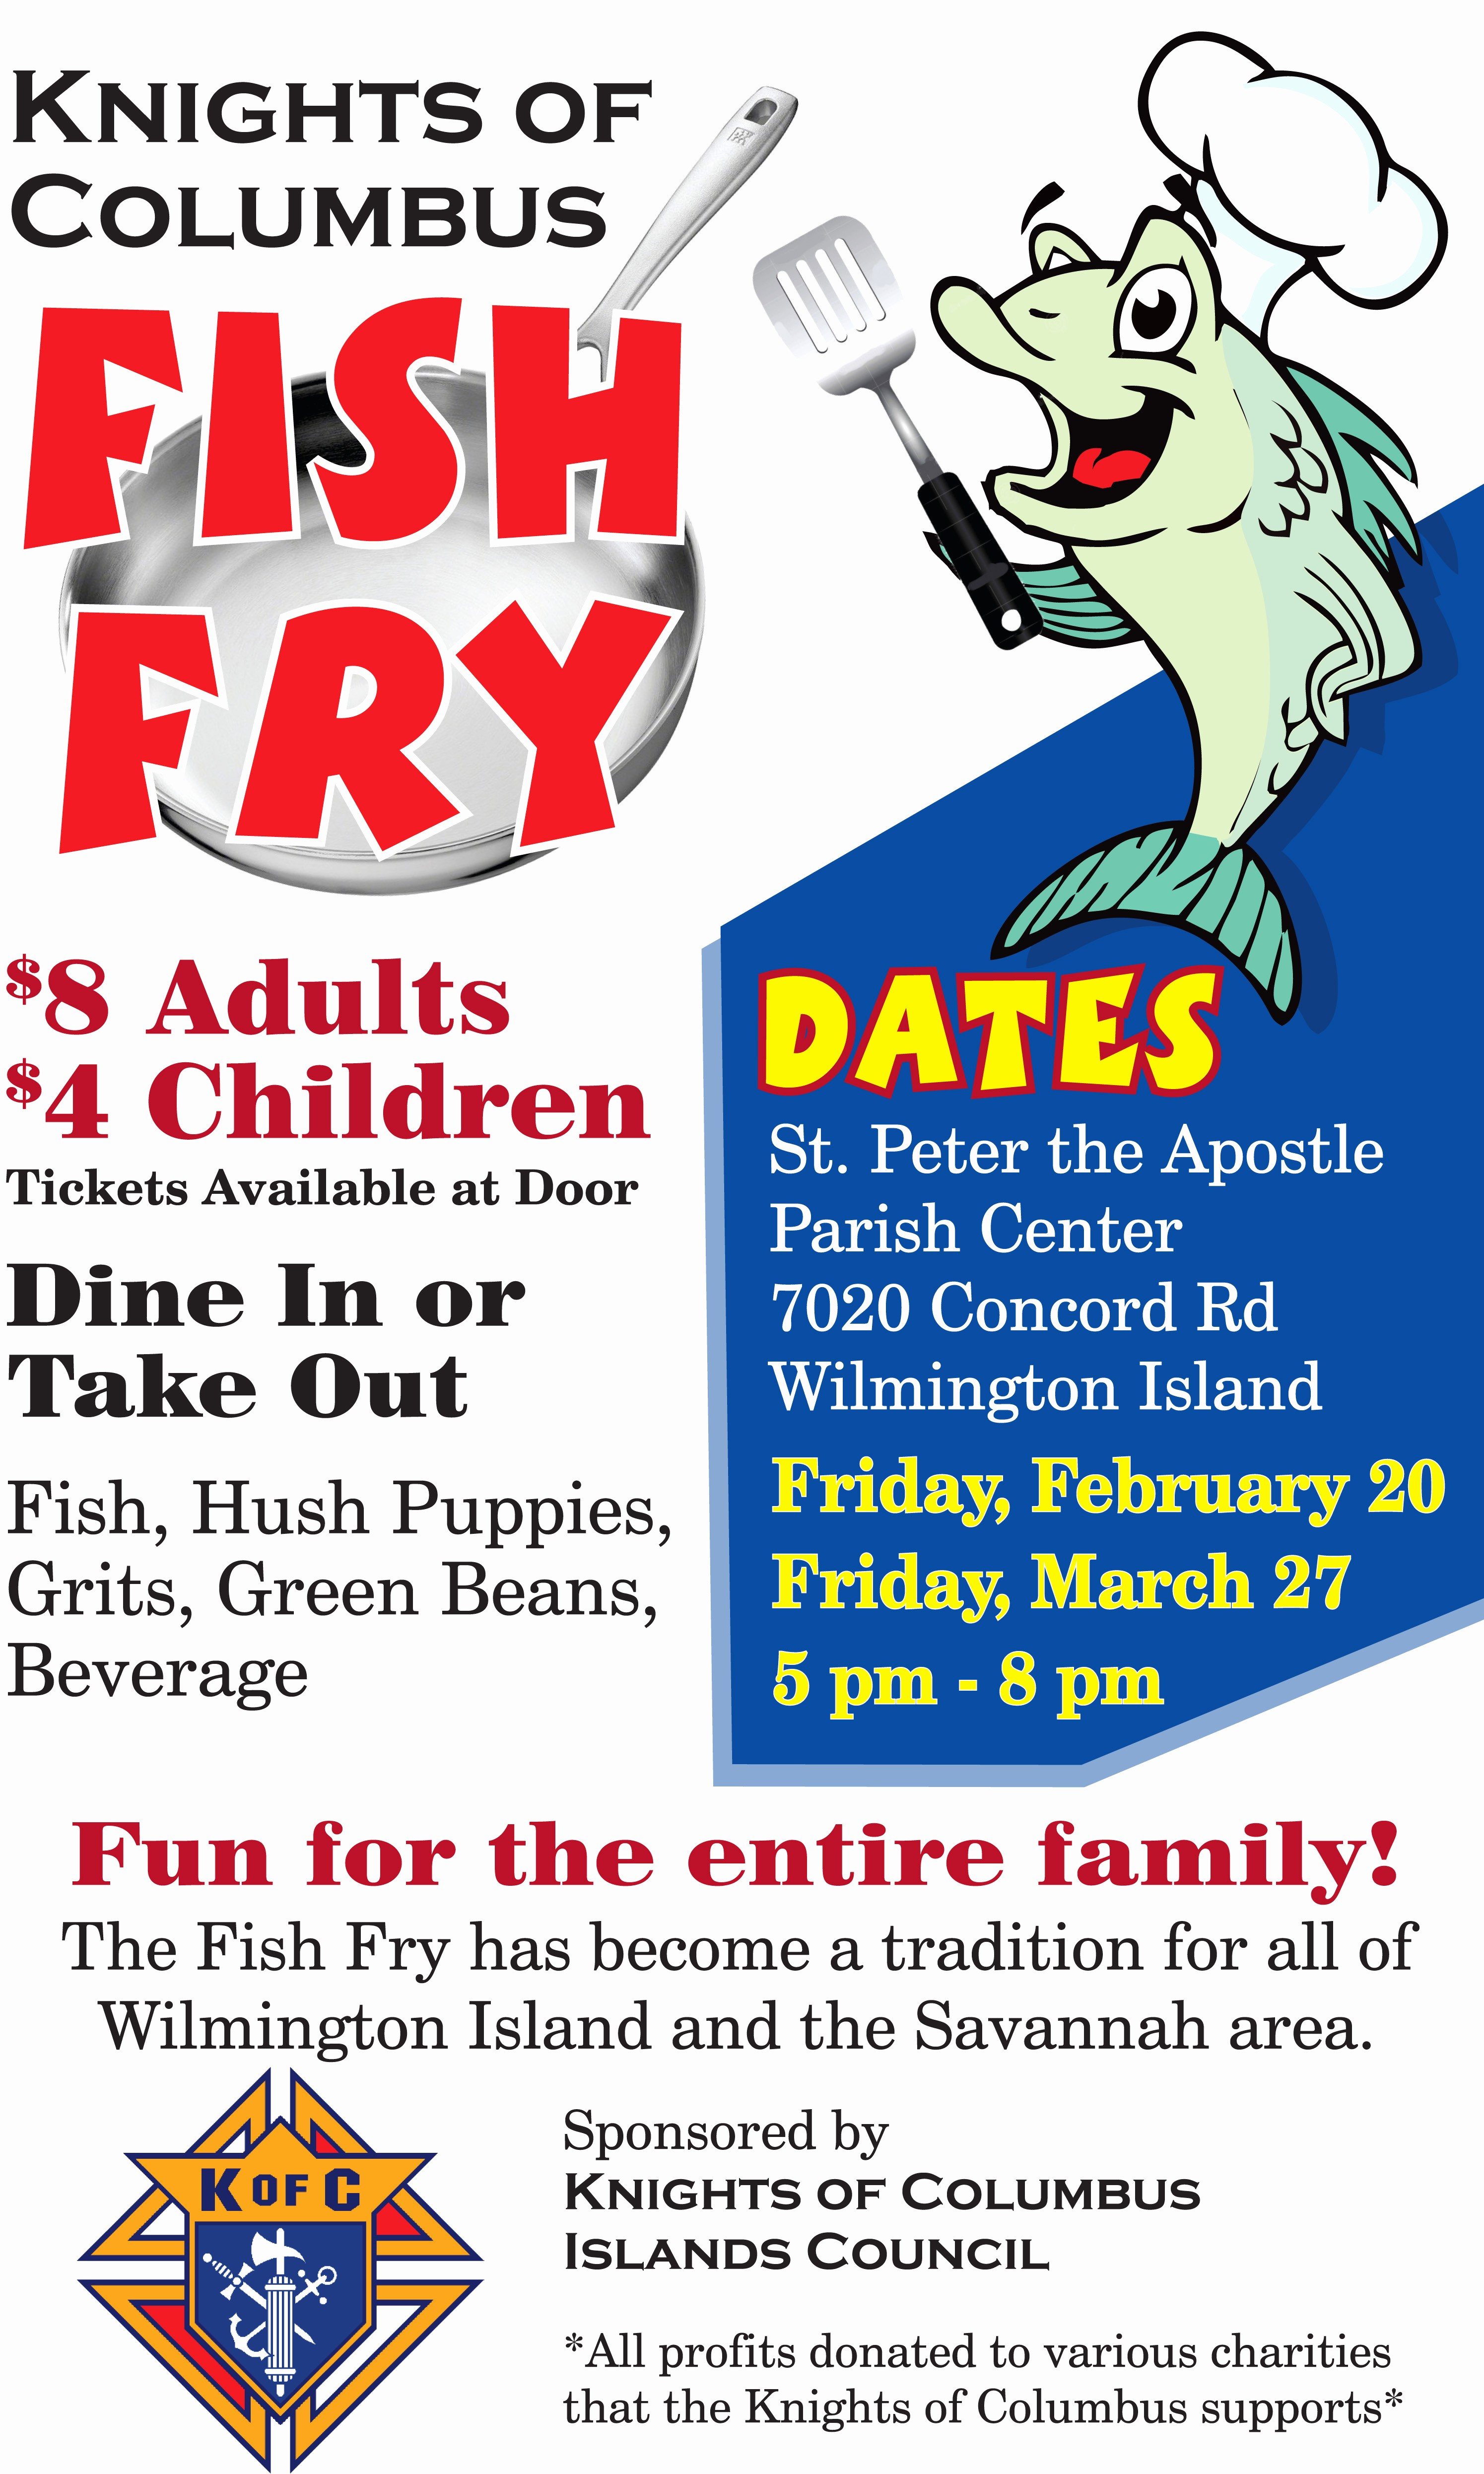 Free Fish Fry Flyer Templates Awesome K Of C Lenten Fish Fry Saint Peter the Apostle Saint